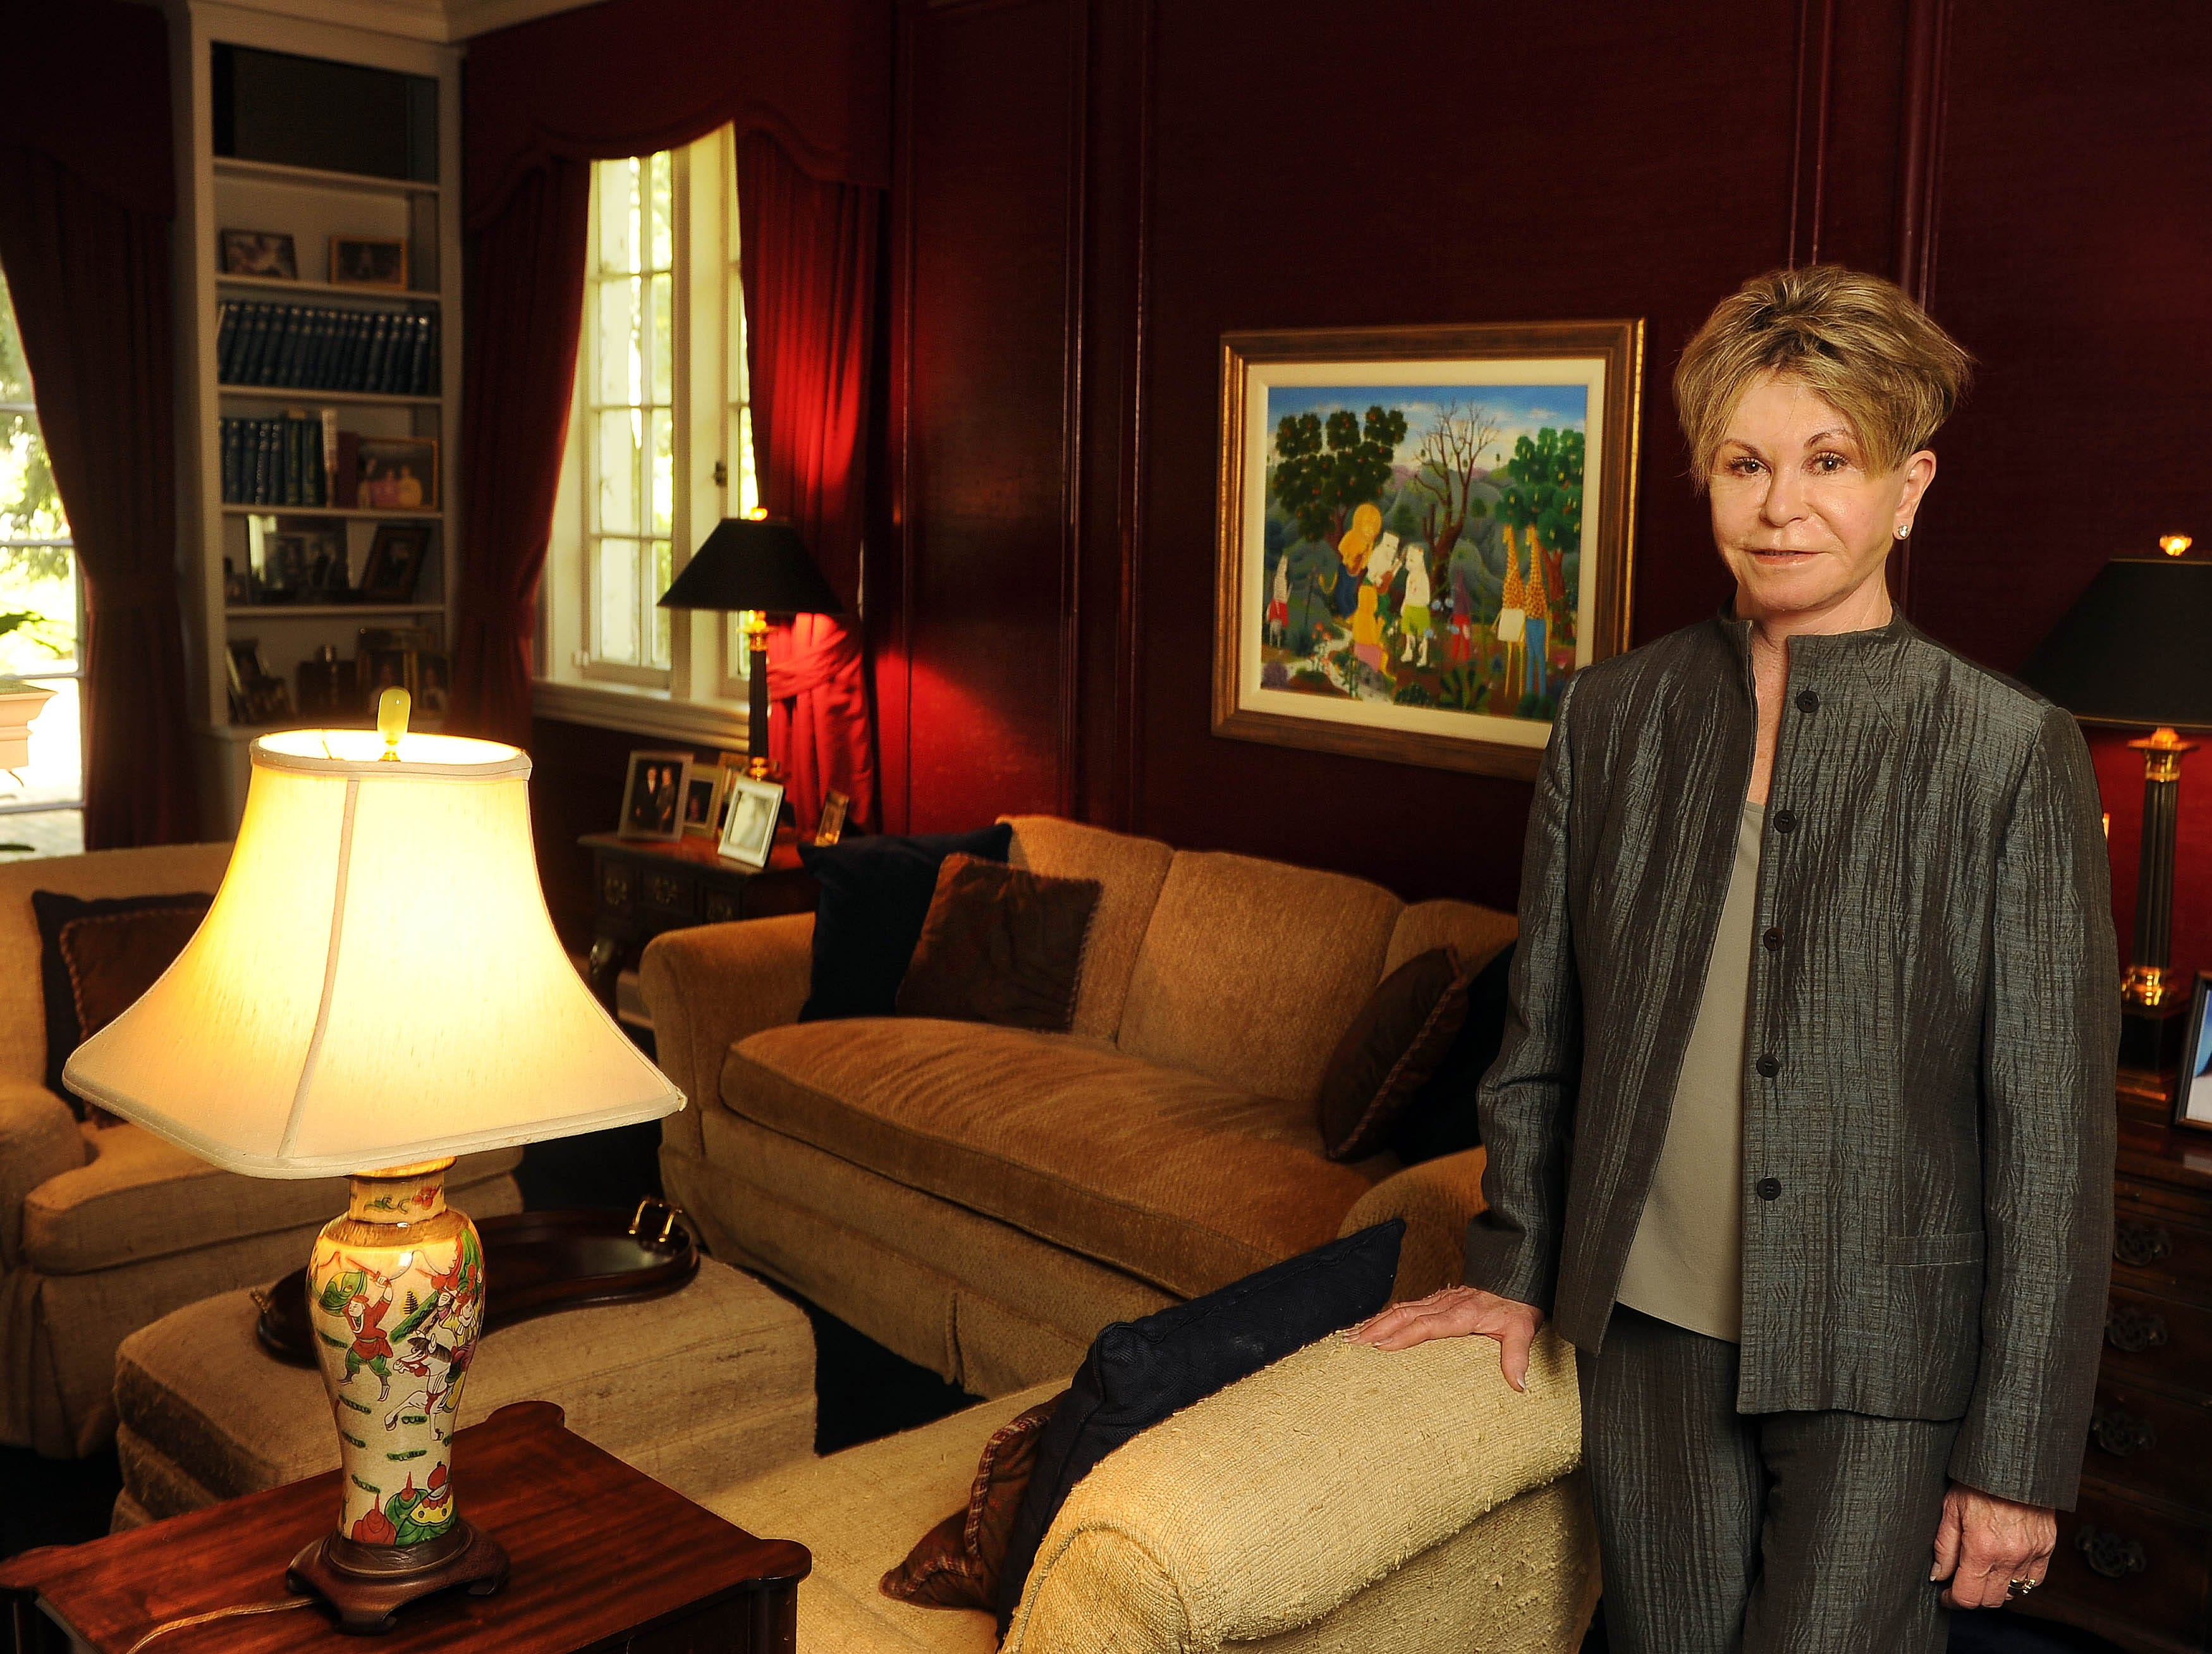 Colleen Conway-Welch poses in the sitting room in her home April 22, 2013.